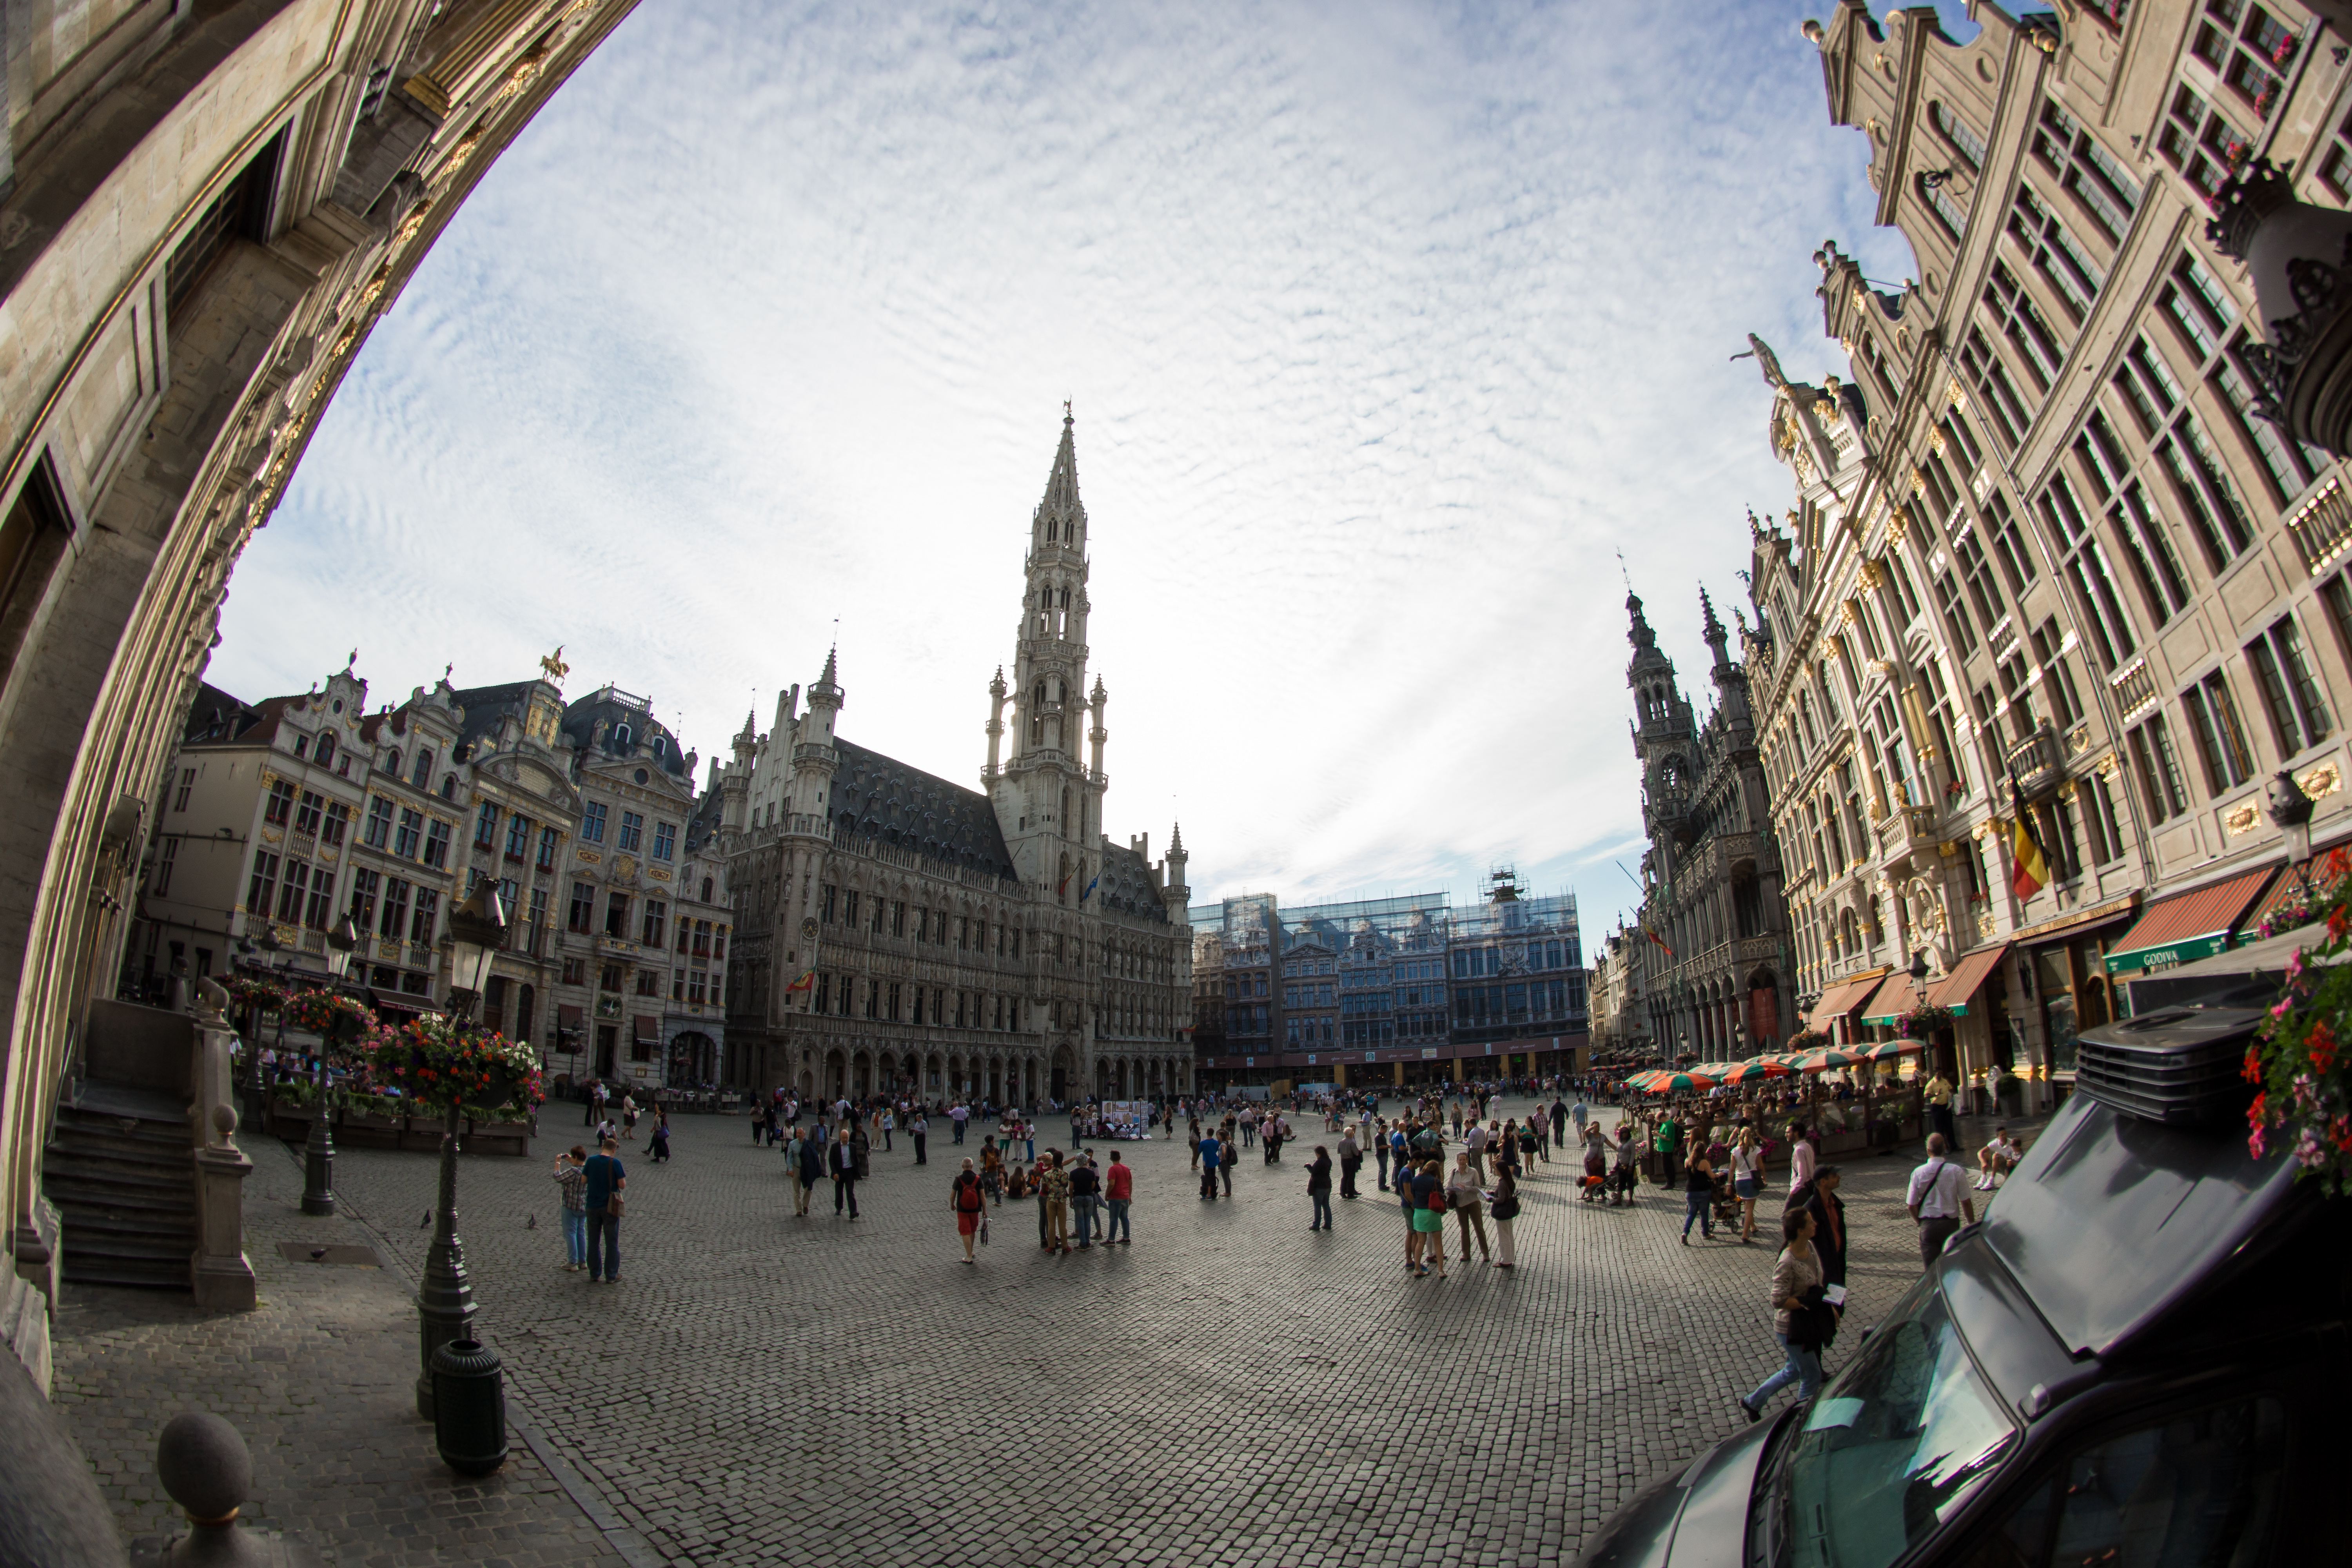 The Center of Brussels was crowded and tourists were everywhere. I would warn travelers about some of the side restaurants very close to the center of town were rip offs as they tried to get you to eat. That doesn't mean all of them were bad, just be prepared to spend a little more money than what you originally planned for. You must have the Delirium beer from the Delirium cafe. The beer is amazing but it hits you quick so be careful.